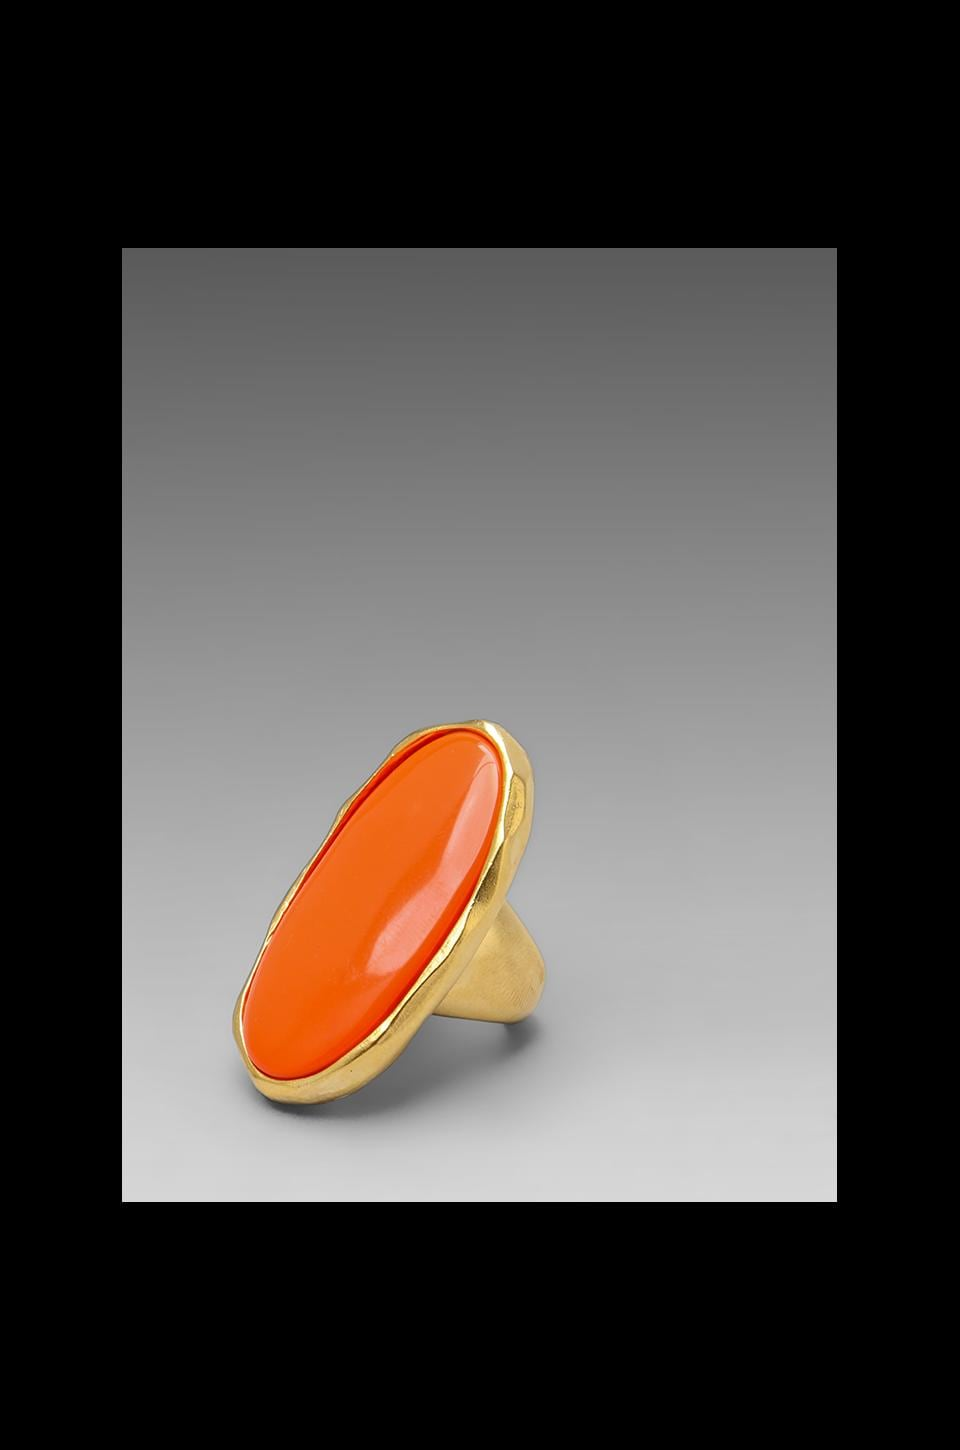 Kenneth Jay Lane Oval Ring in Sating Gold/Coral